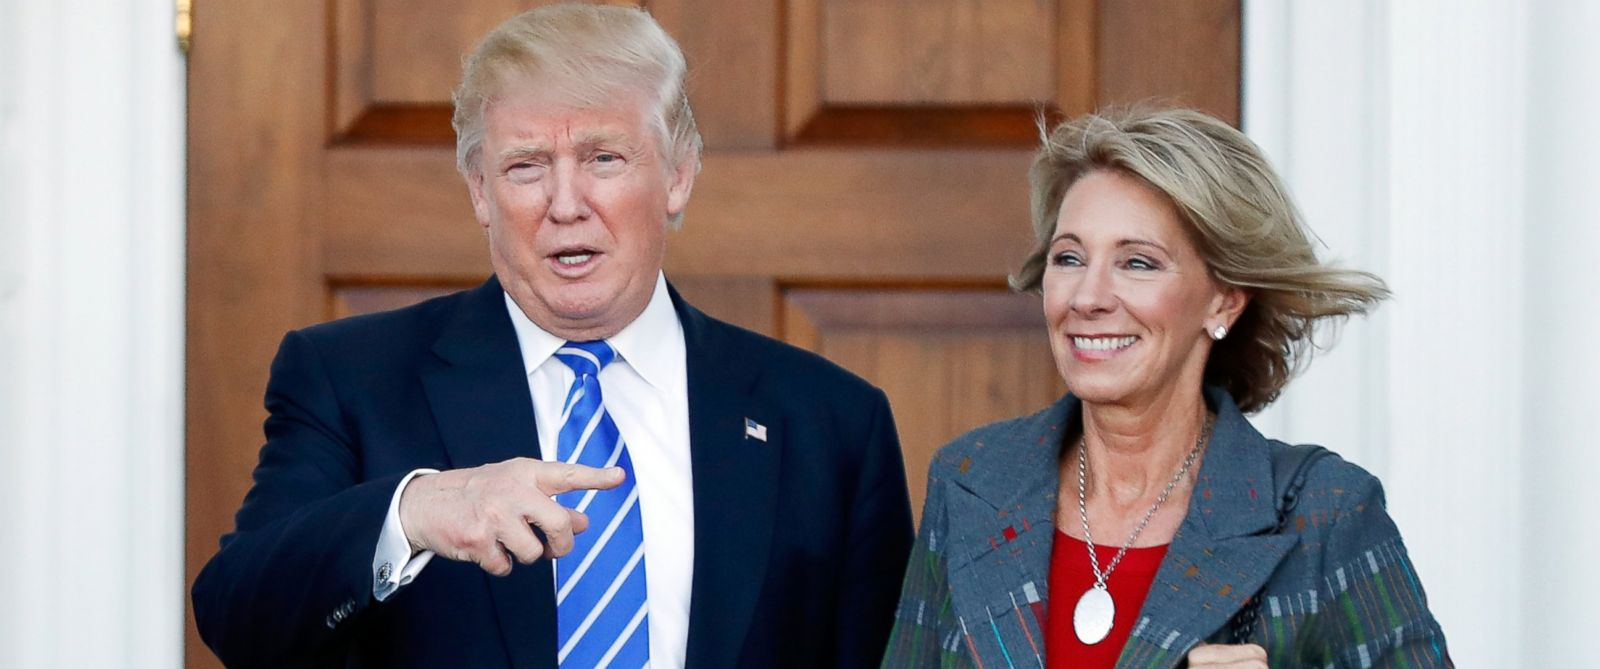 PHOTO: In this Nov. 19, 2016 file photo, President-elect Donald Trump stands with Education Secretary-designate Betsy DeVos in Bedminster, N.J., Nov. 19, 2016.